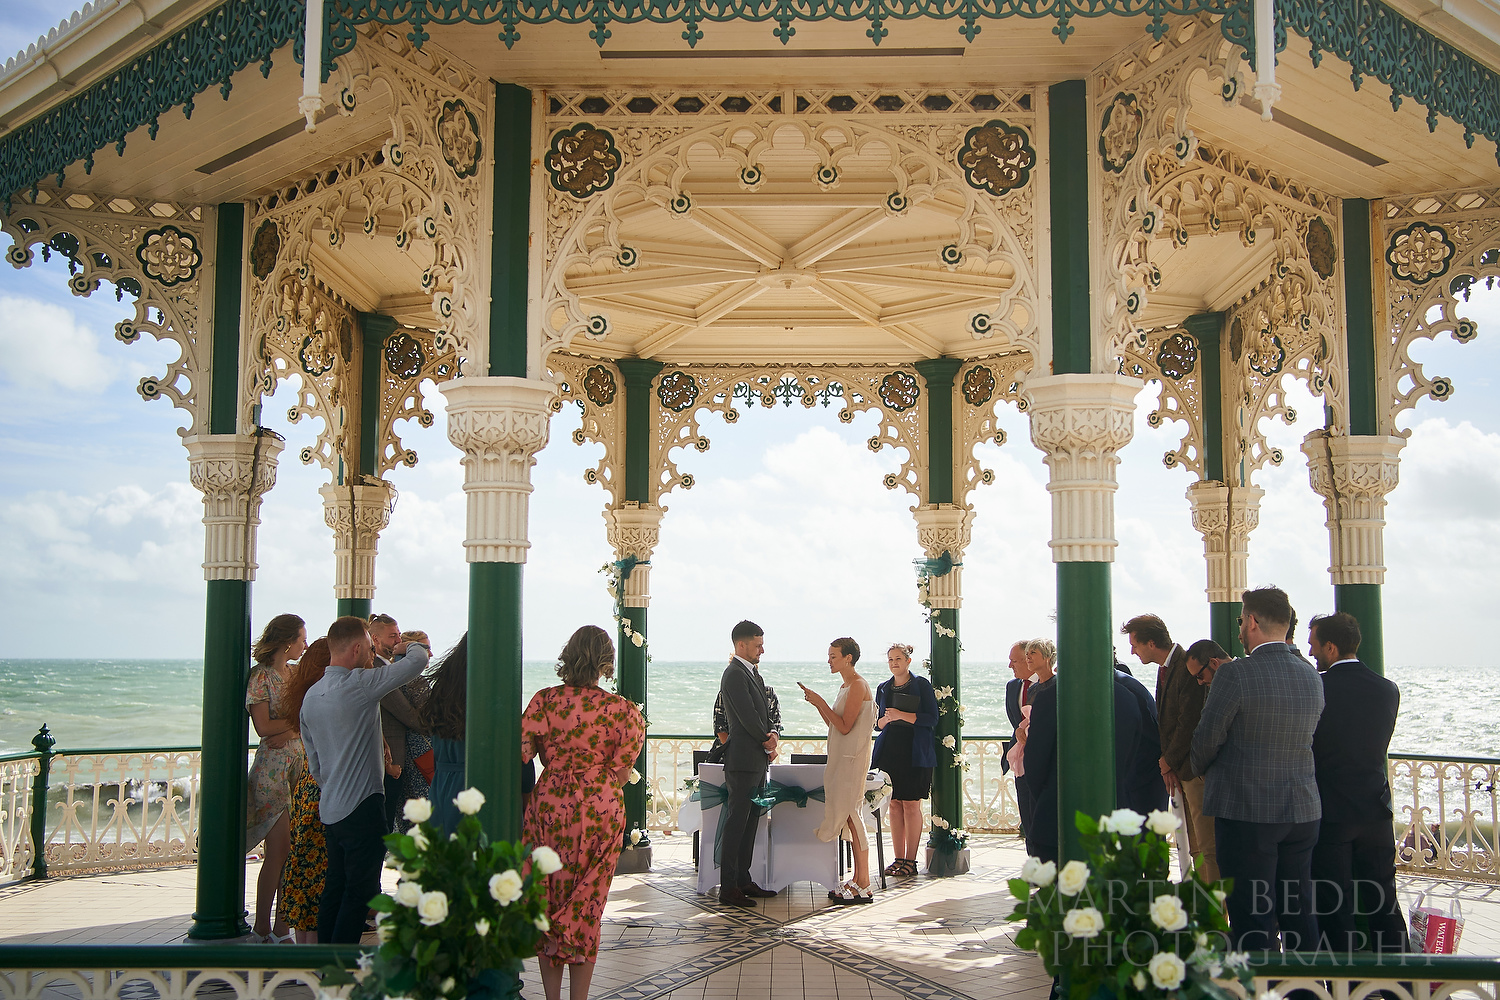 Wedding vows in Brighton bandstand